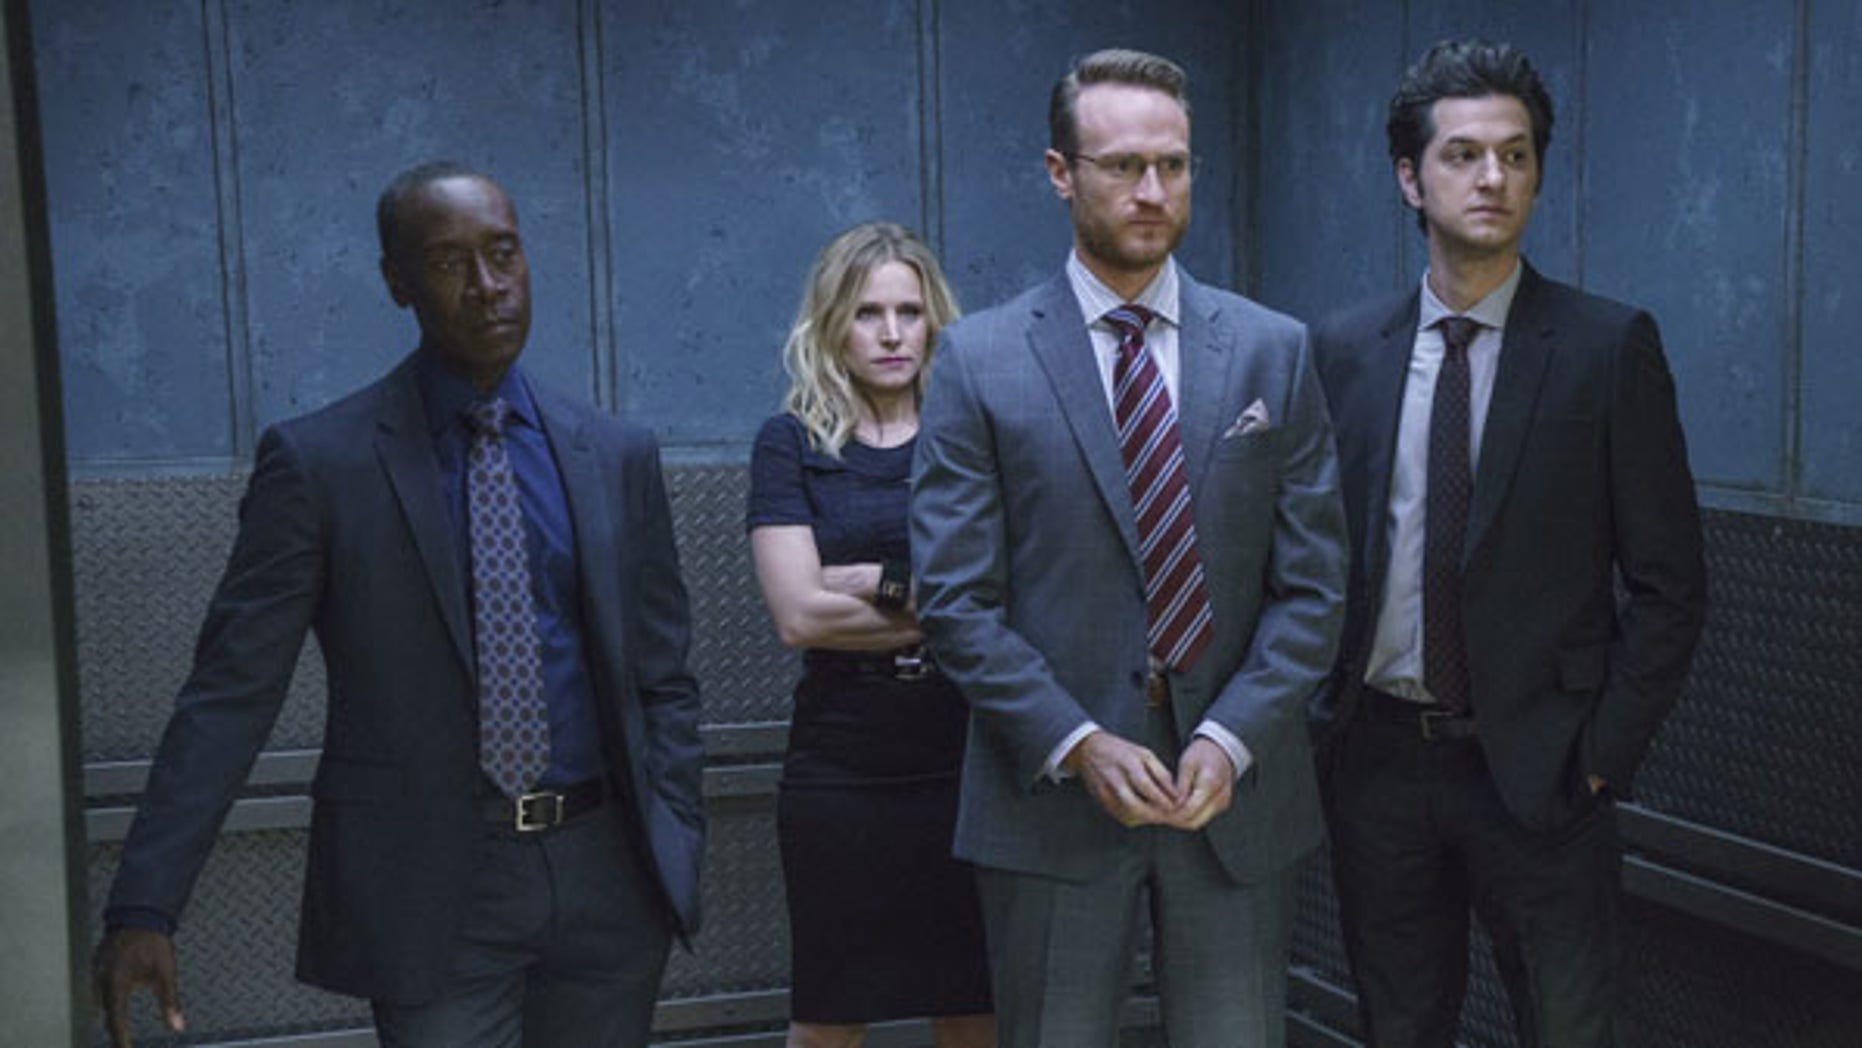 """In this image released by Showtime, Don Cheadle as Marty Kaan, from left, Kristen Bell as Jeannie Van Der Hooven, Ben Schwartz as Clyde Oberholt and Josh Lawson as Doug Guggenheim appear in a scene from, """"House of Lies."""" The Showtime comedy is wrapping its five-season run with a finale filmed entirely on location in Havana. The episode, titled âNo Es Facil,â premieres June 13. (Michael Desmond/Showtime via AP)"""